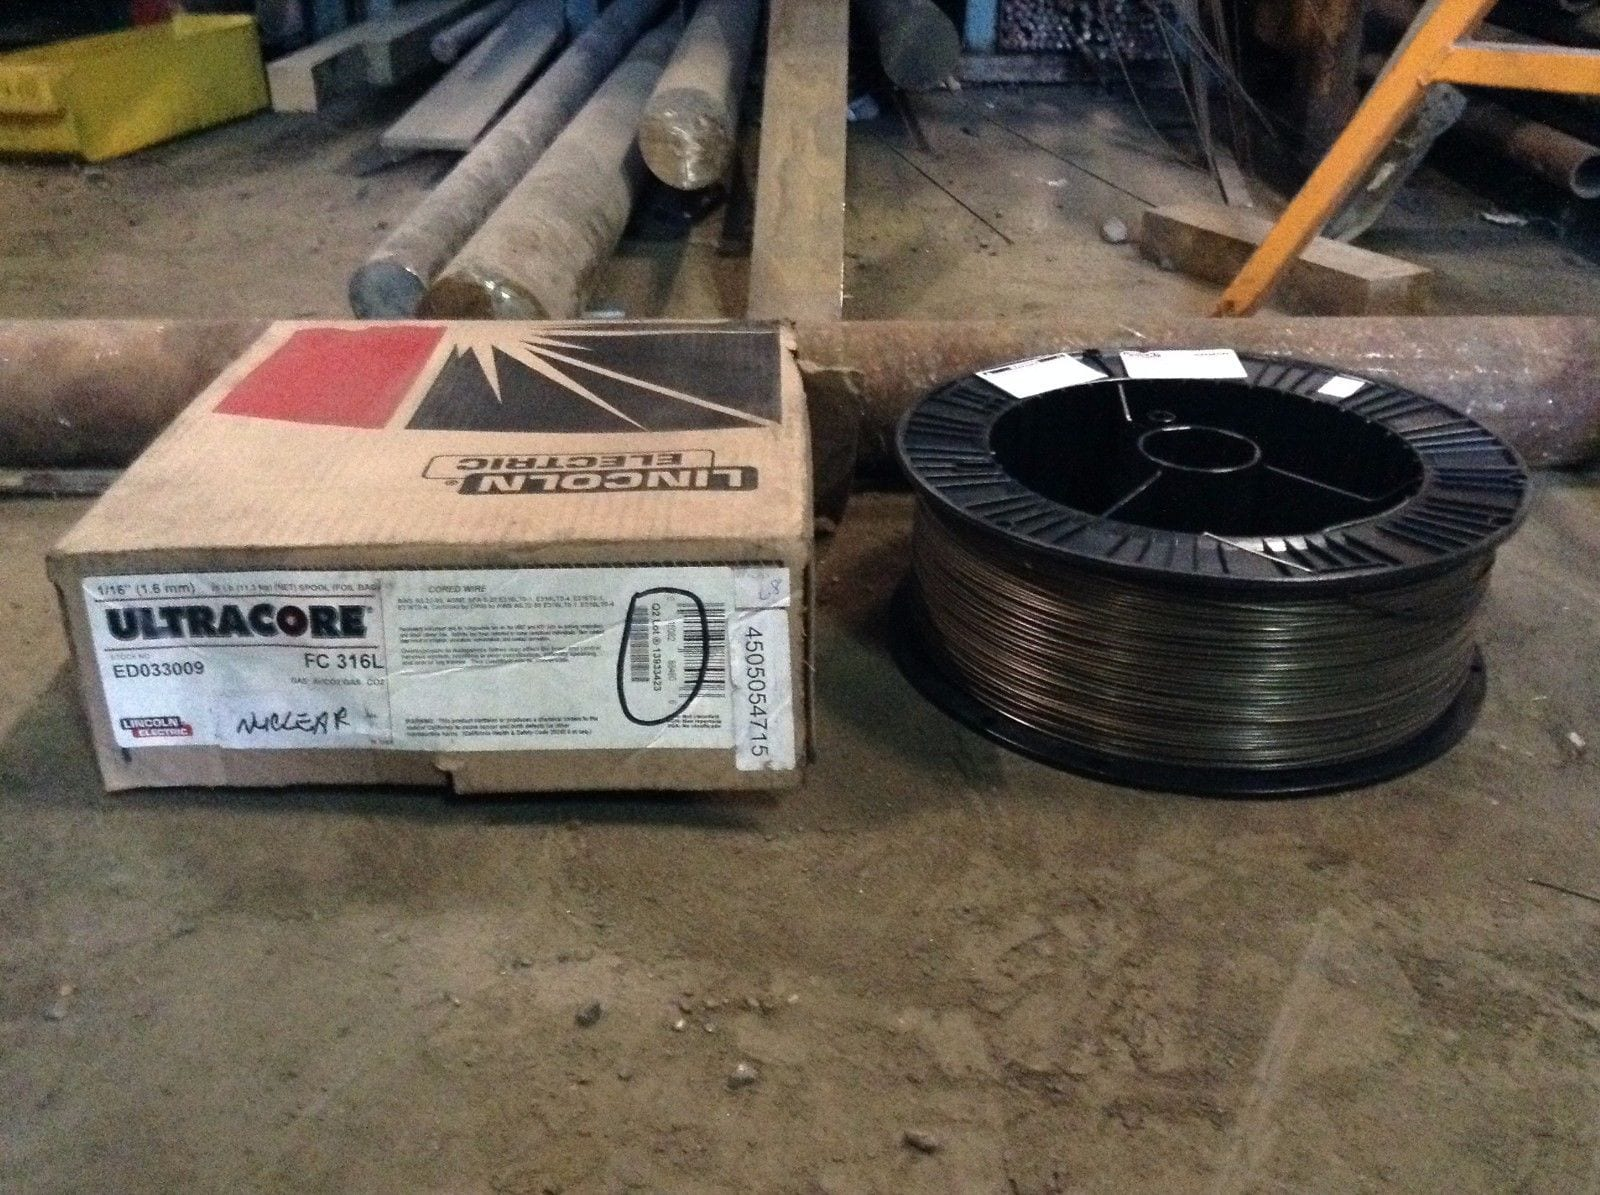 Lincoln Electric Ultracore FC 316L Stainless Steel MIG Welding Wire ...